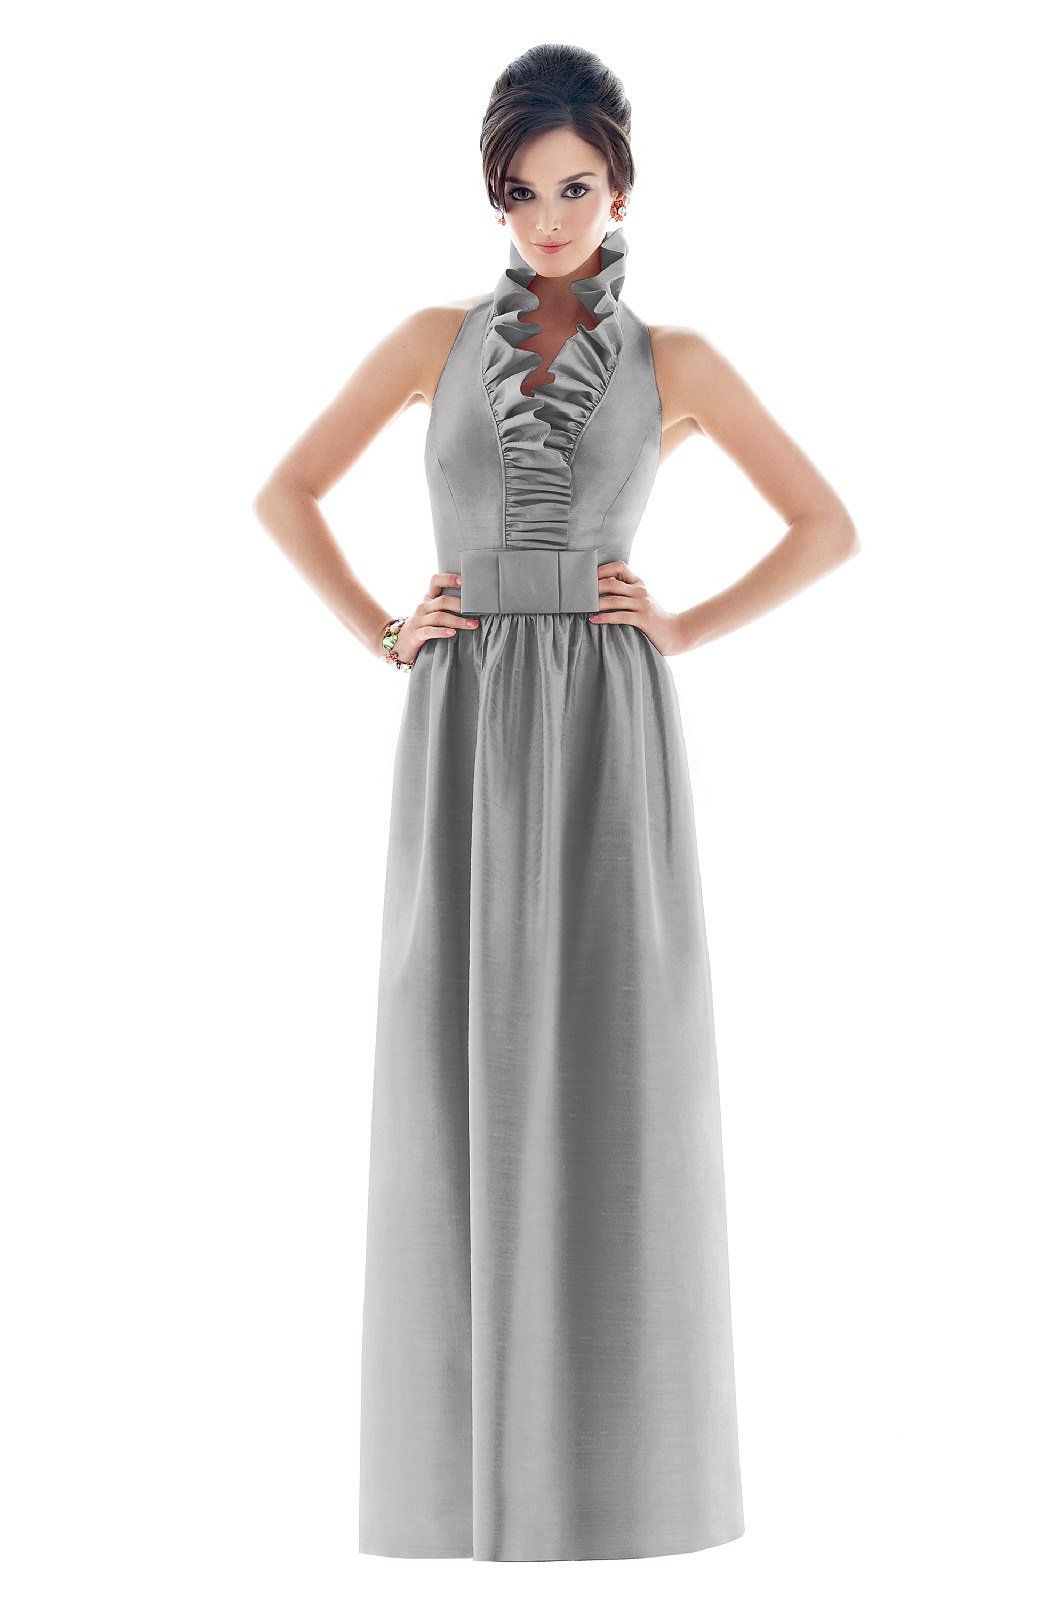 Alfred sung d469 bridesmaid dress weddington way my style the alfred sung bridesmaid collection offers fresh contemporary bridesmaid dresses while keeping your budget in mind ombrellifo Choice Image